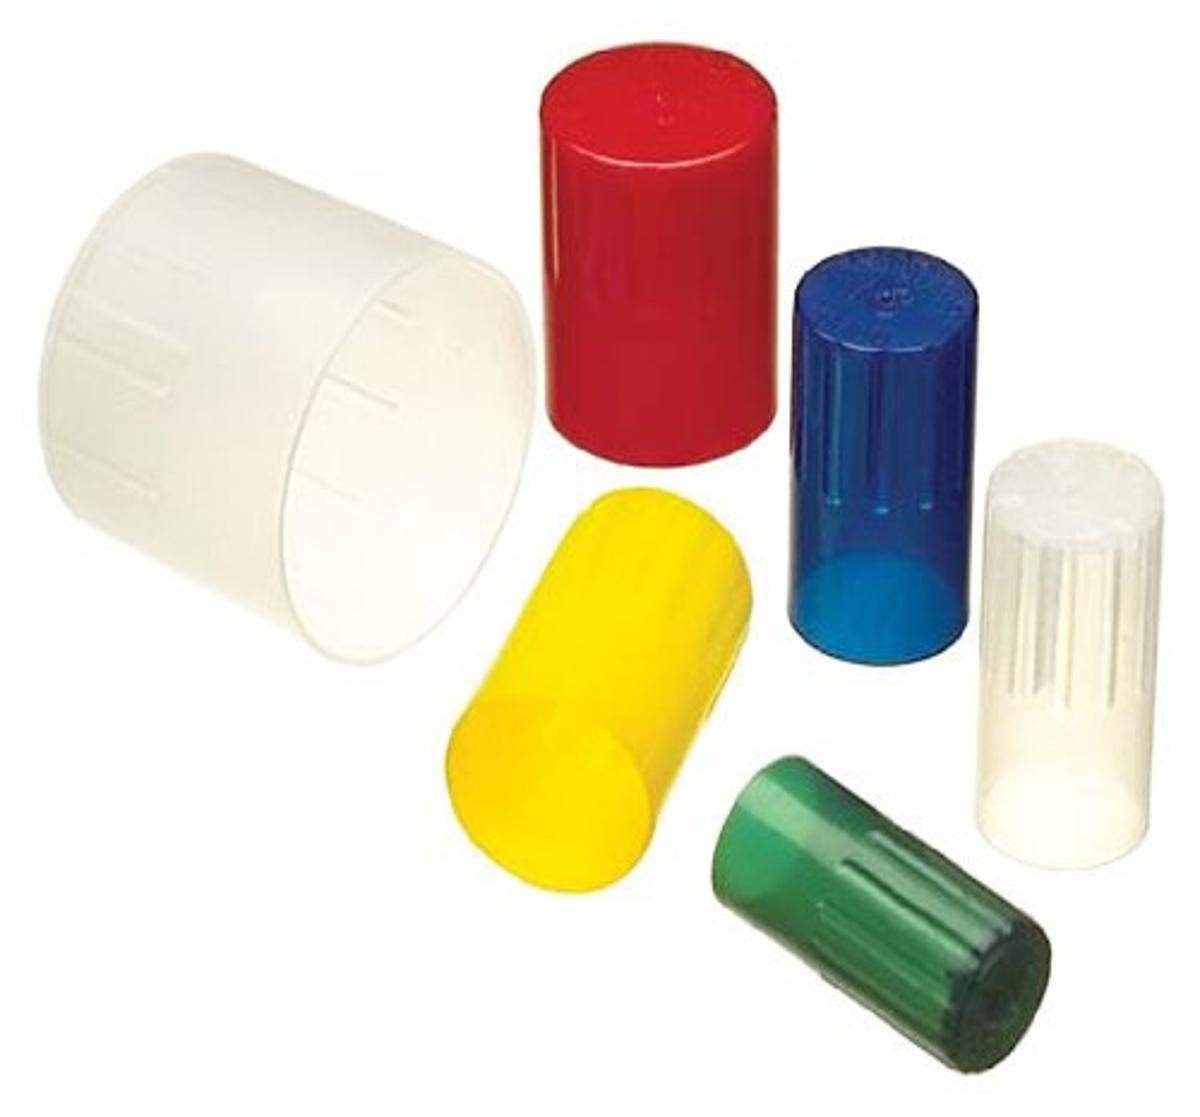 Kimble 73662-18 KIM-KAP Red Polypropylene Autoclavable Closures for 18mm Culture Tube (Case of 150)